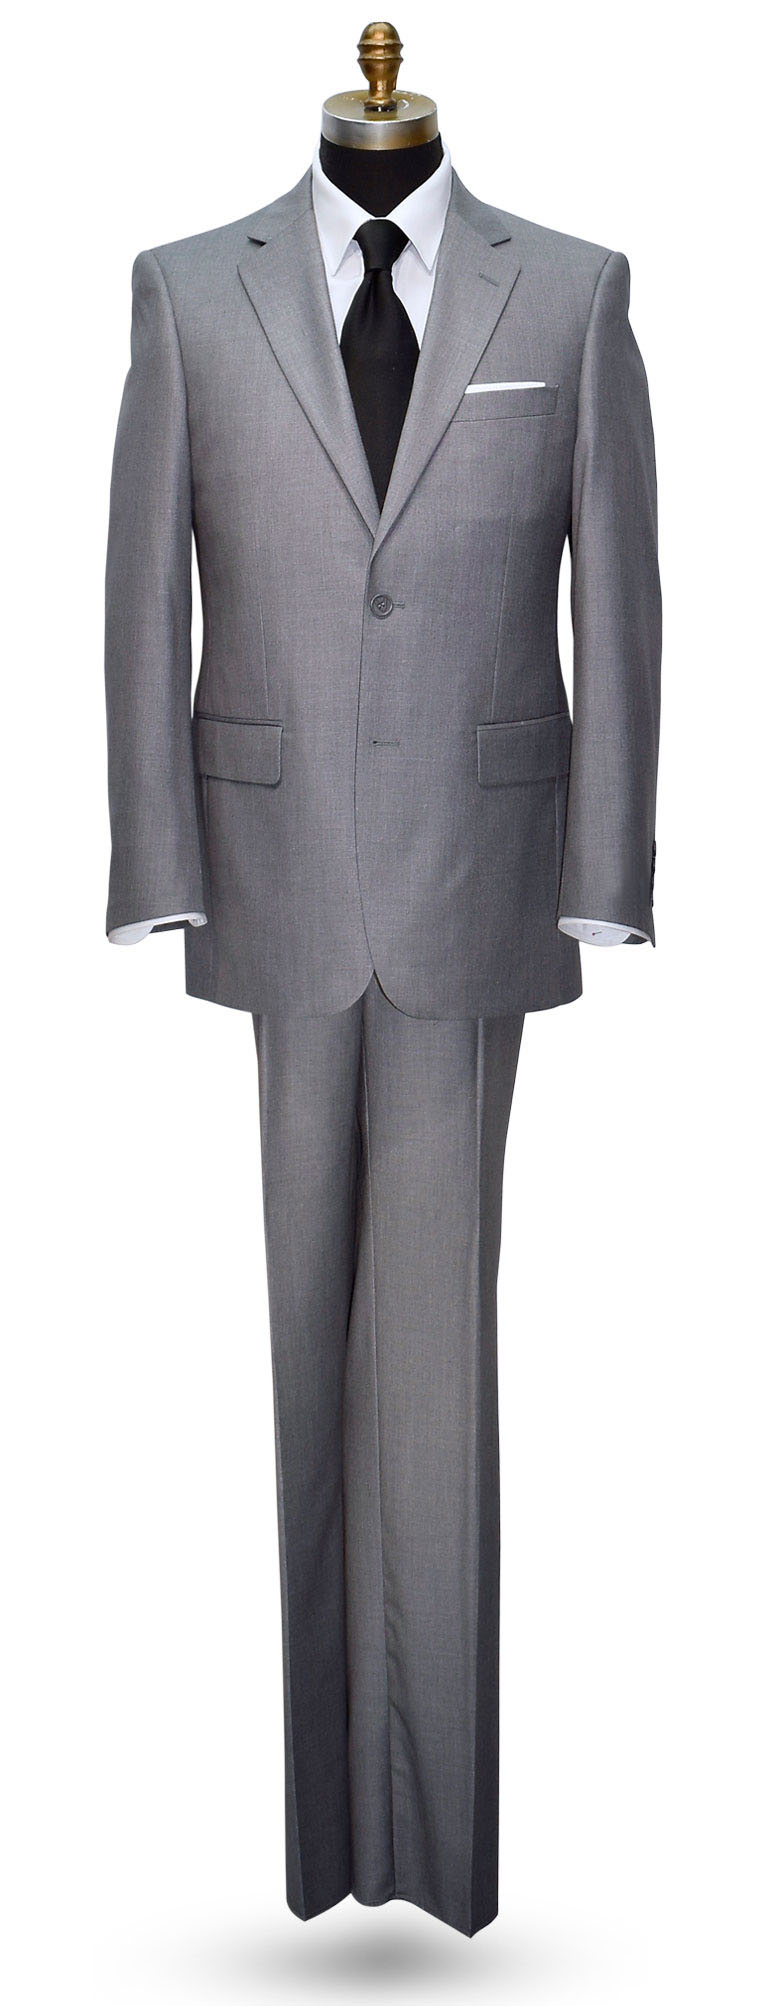 Heather Gray Mens Suit - Coat and Pants